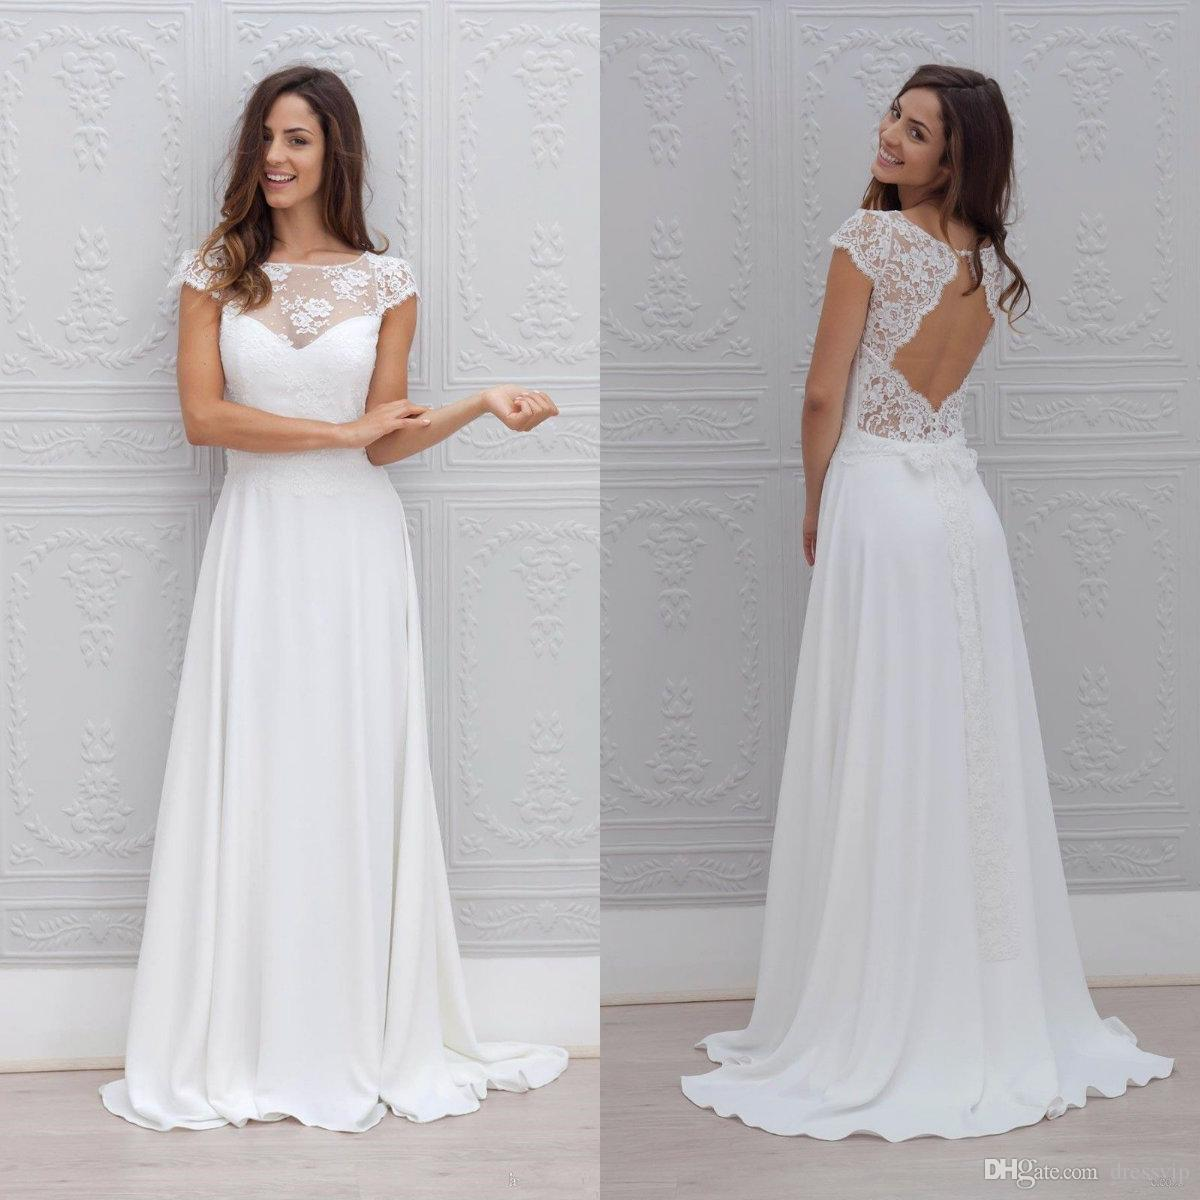 6896f780b567b Discount Cheap Beach Wedding Dresses Lace Top A Line Hollow Back Cap Sleeves  Sweep Train Boho Wedding Dress Bow Custom Country Bridal Gowns Halter A Line  ...